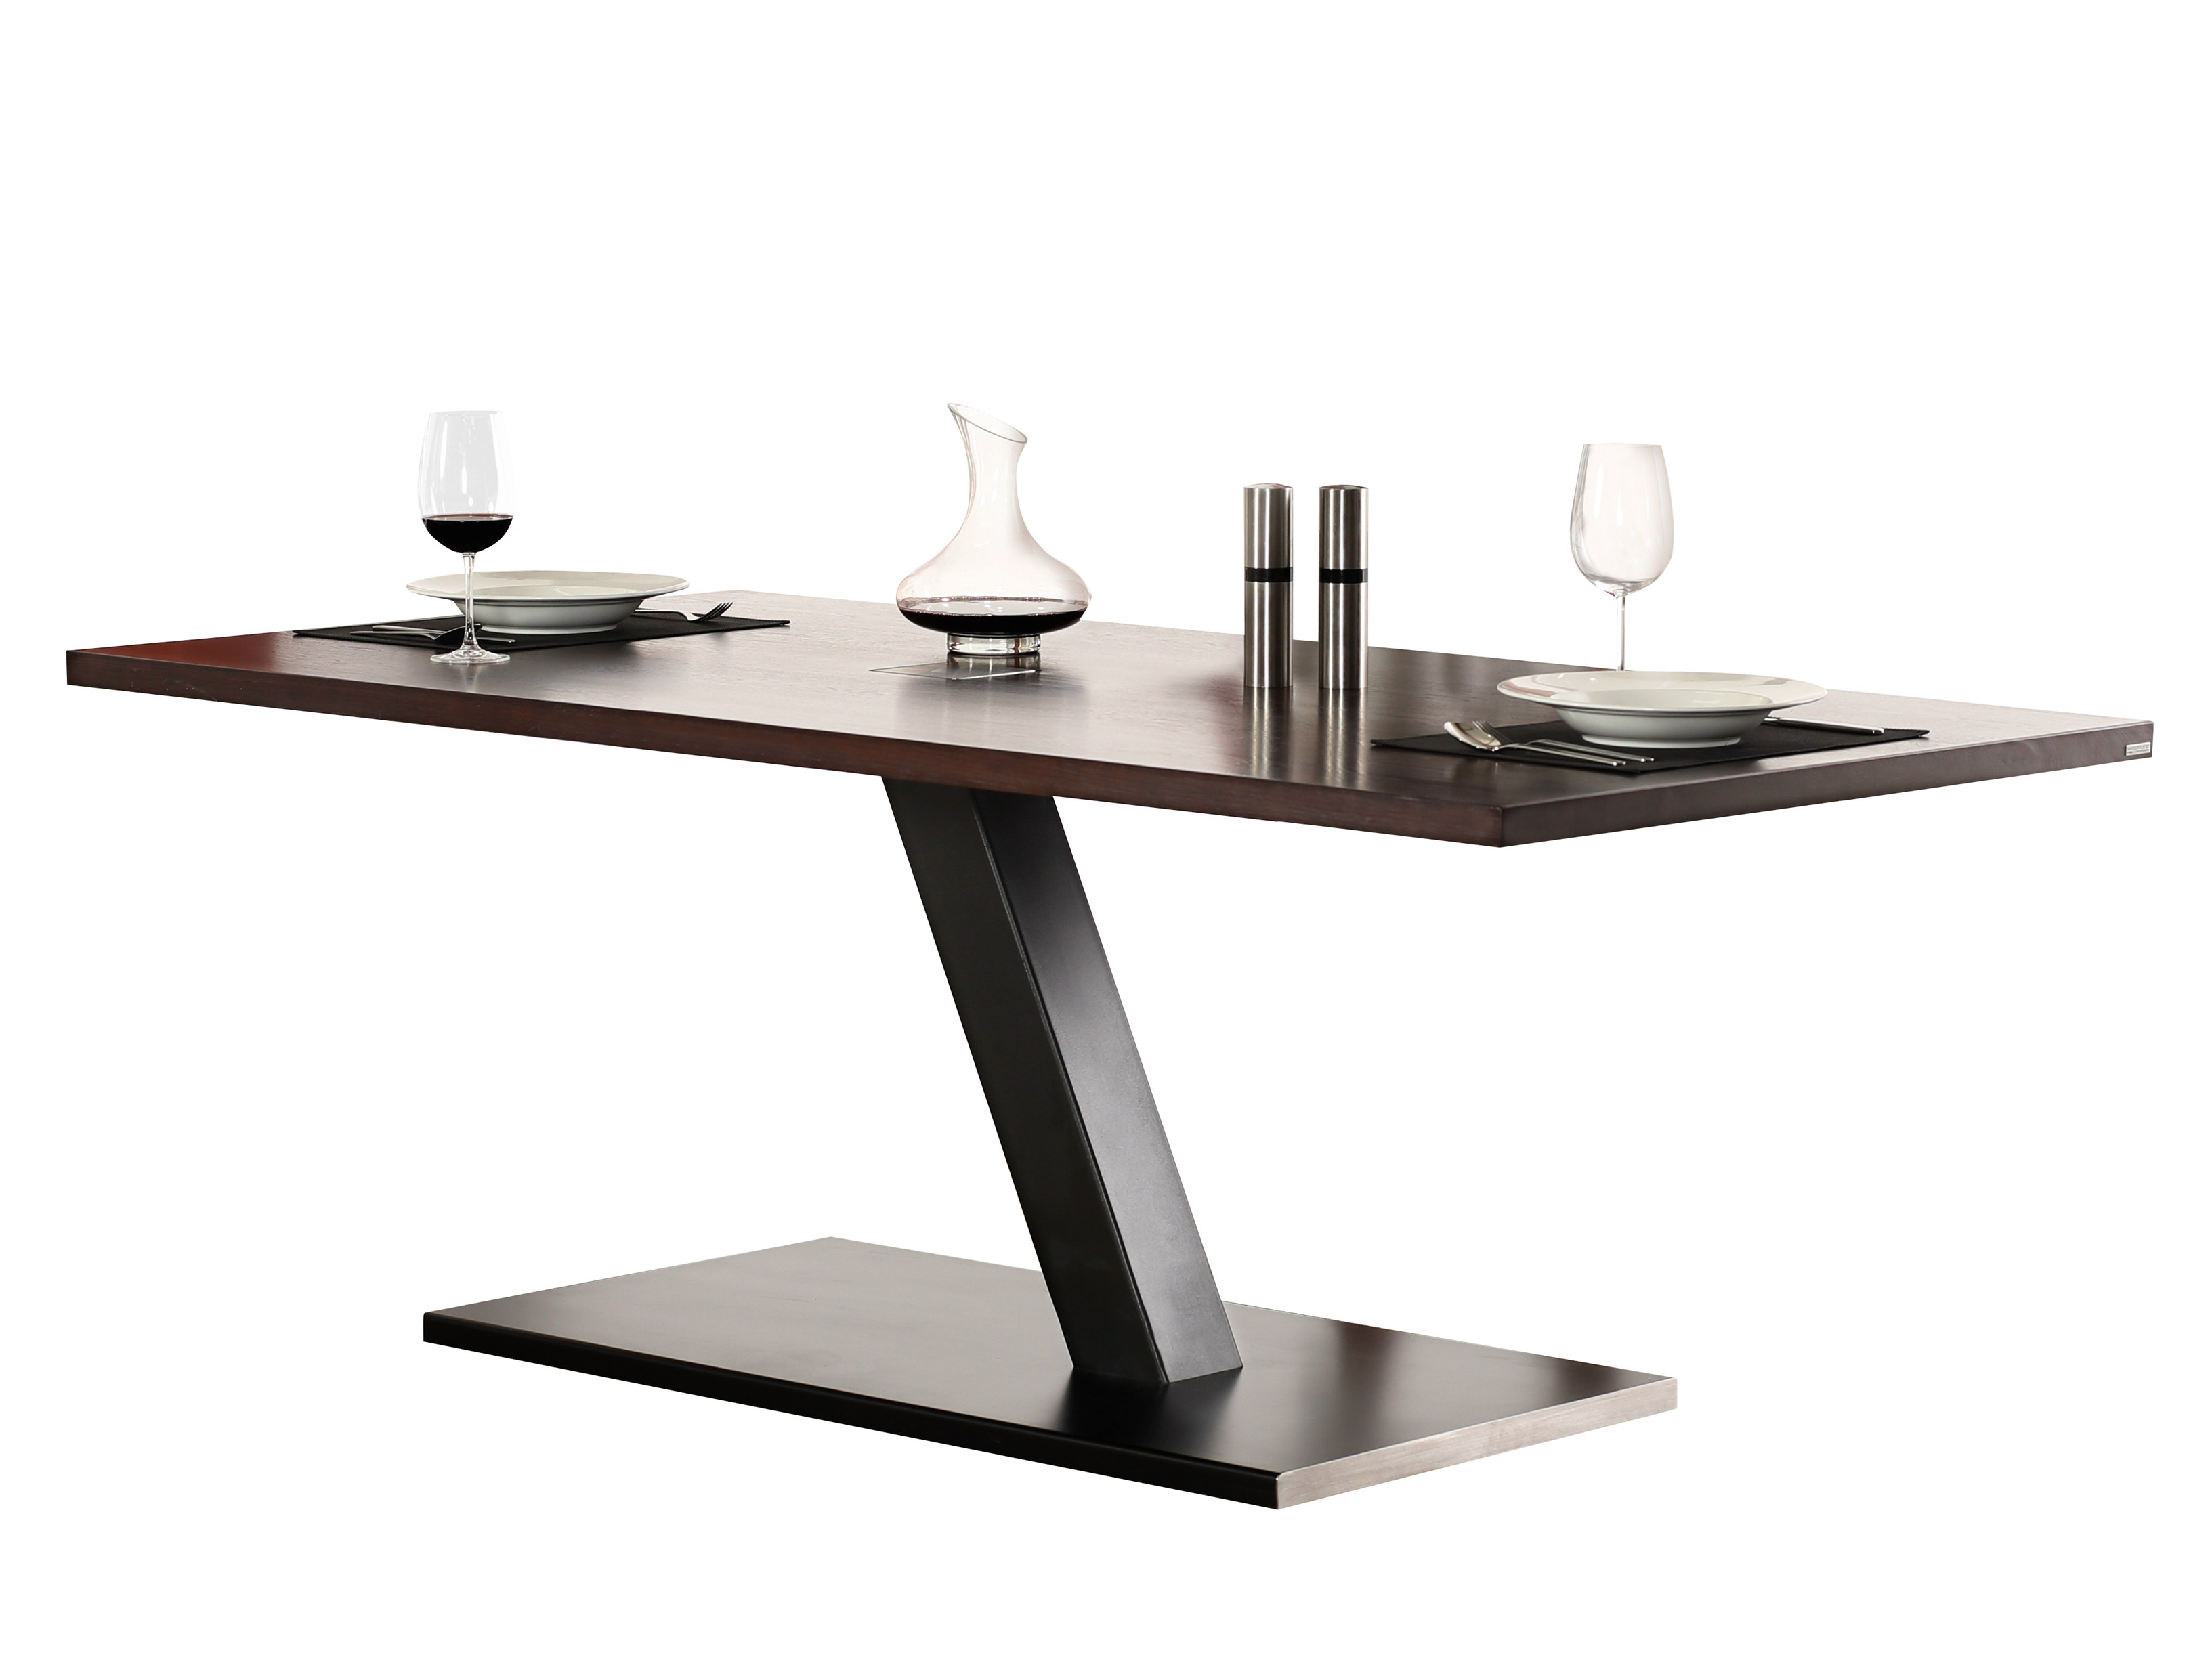 609 dining table by wissmann raumobjekte. Black Bedroom Furniture Sets. Home Design Ideas